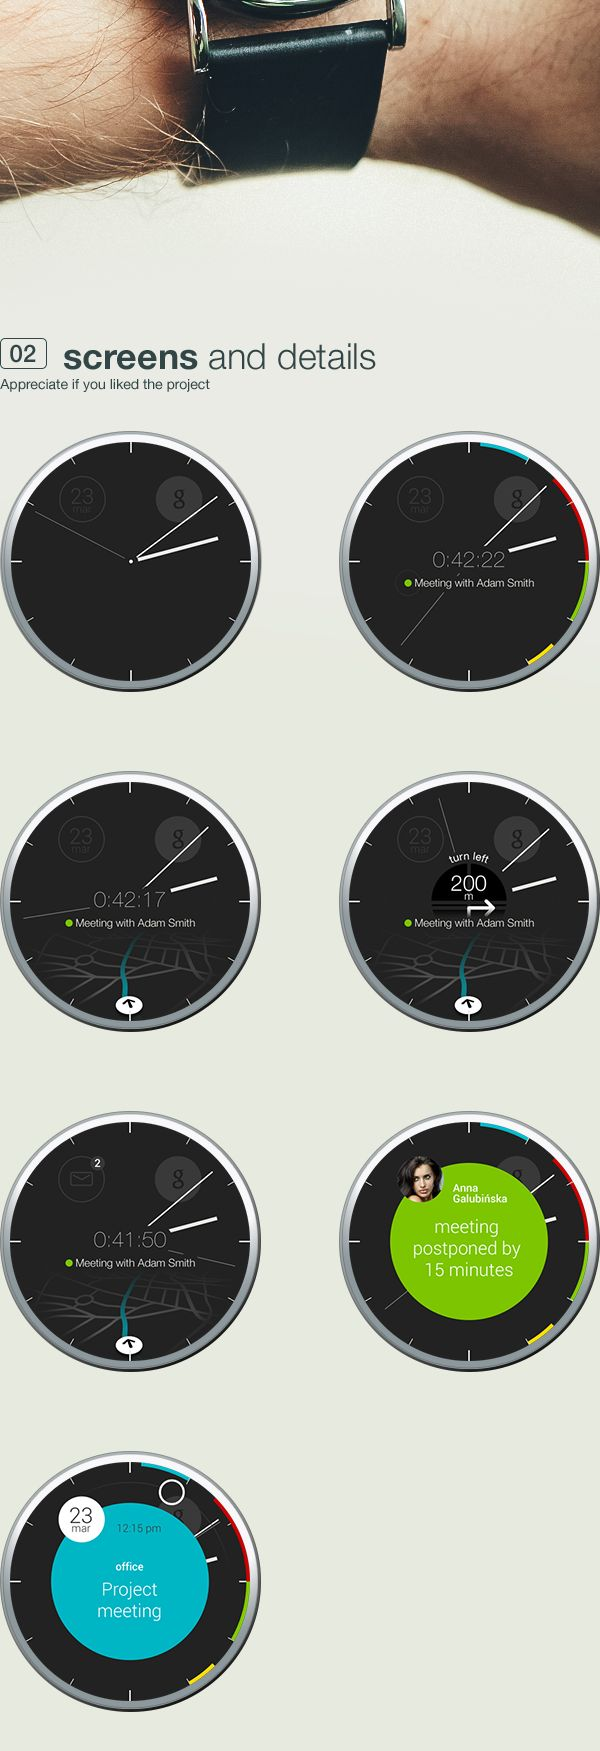 calendar / clock - android wear concept app by Michal Galubinski, via Behance